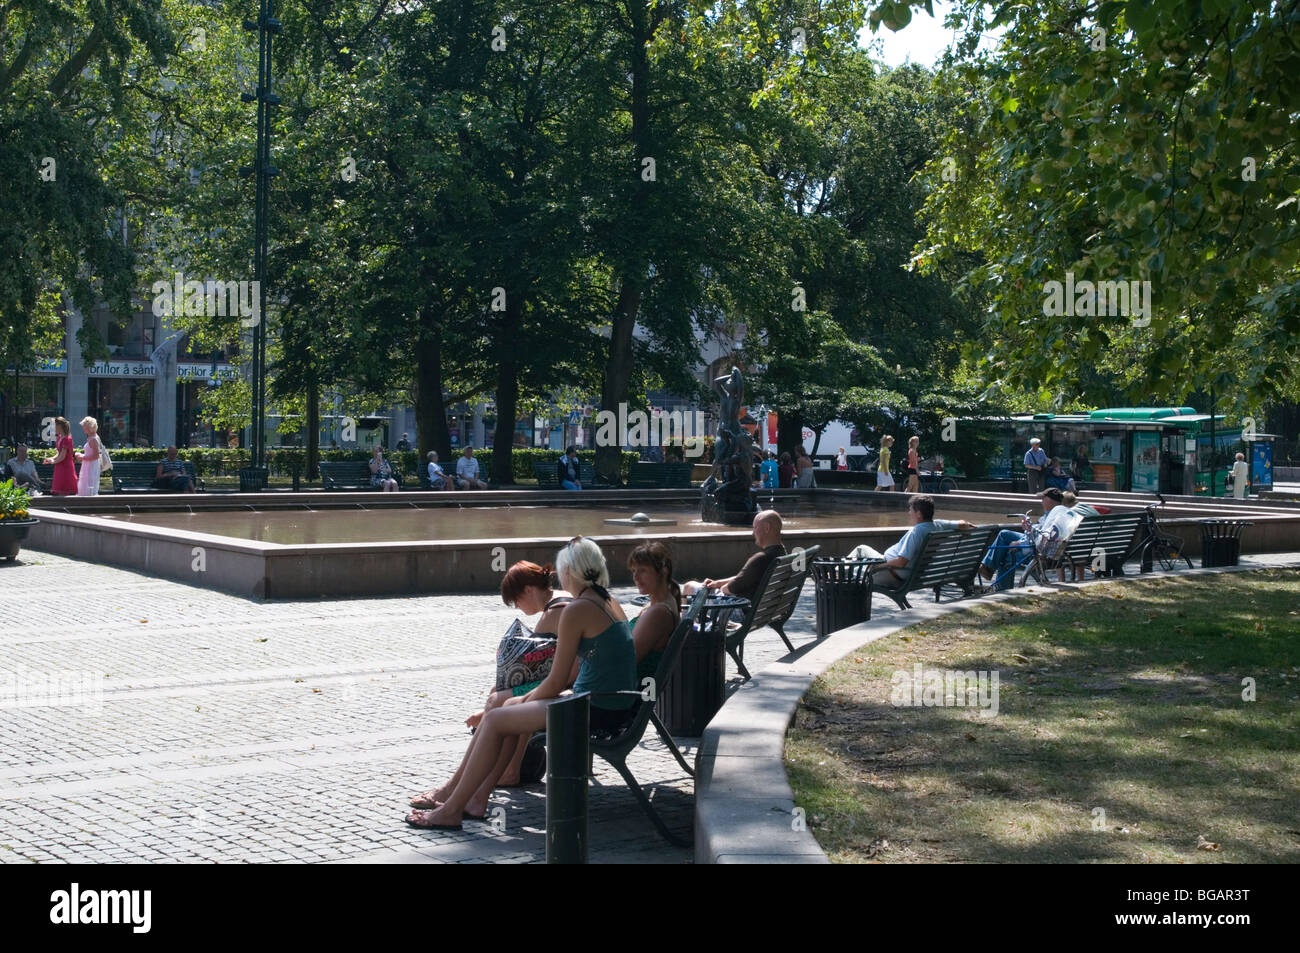 malmo sweden summertime summer time in city cites swedish center town sunny warm weather relax relaxed atmosphere - Stock Image